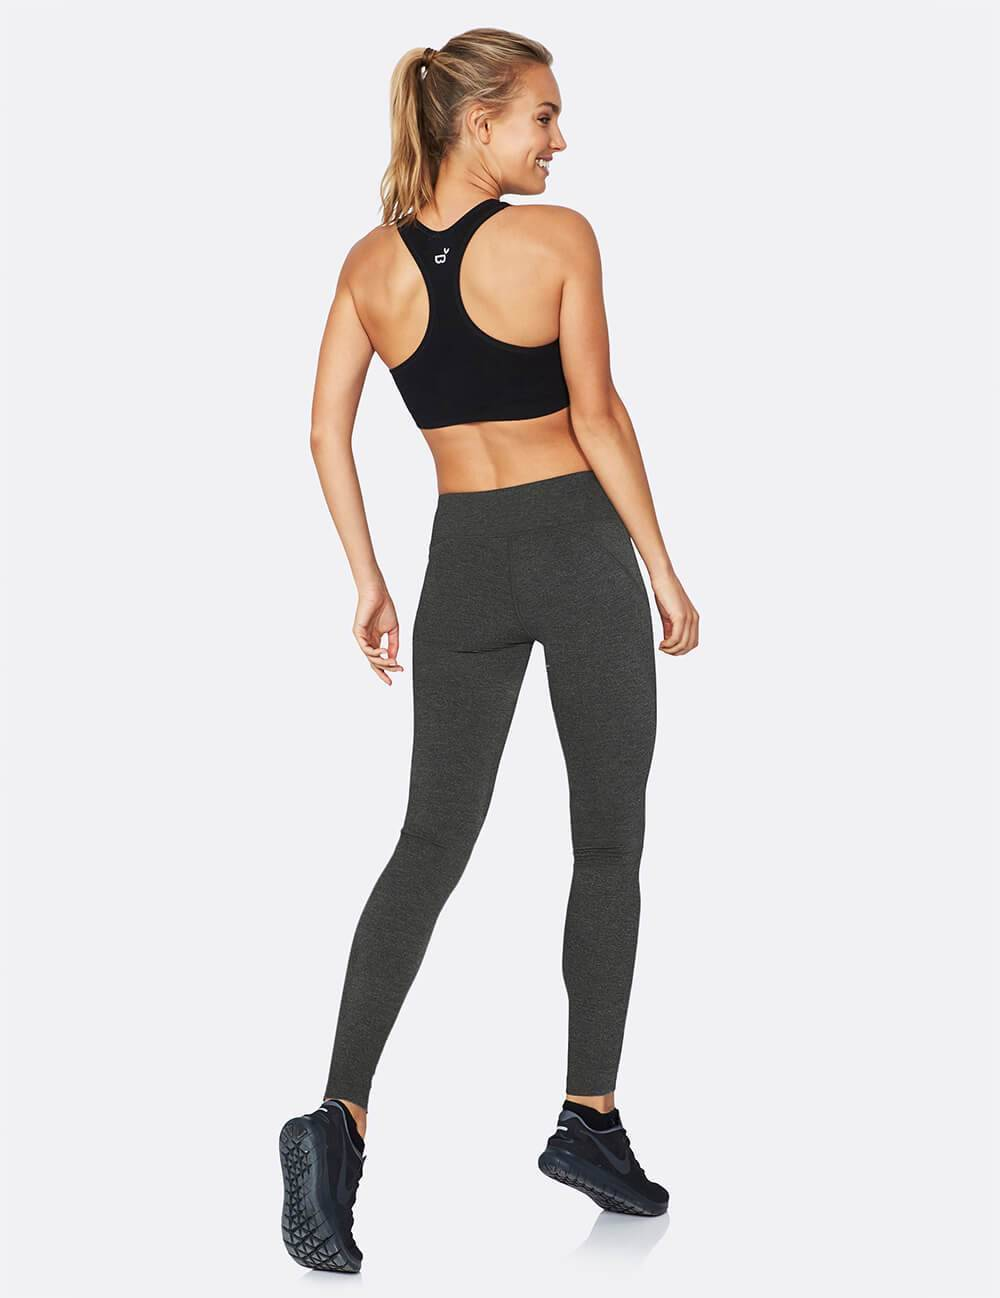 boody eco-friendly affordable leggings